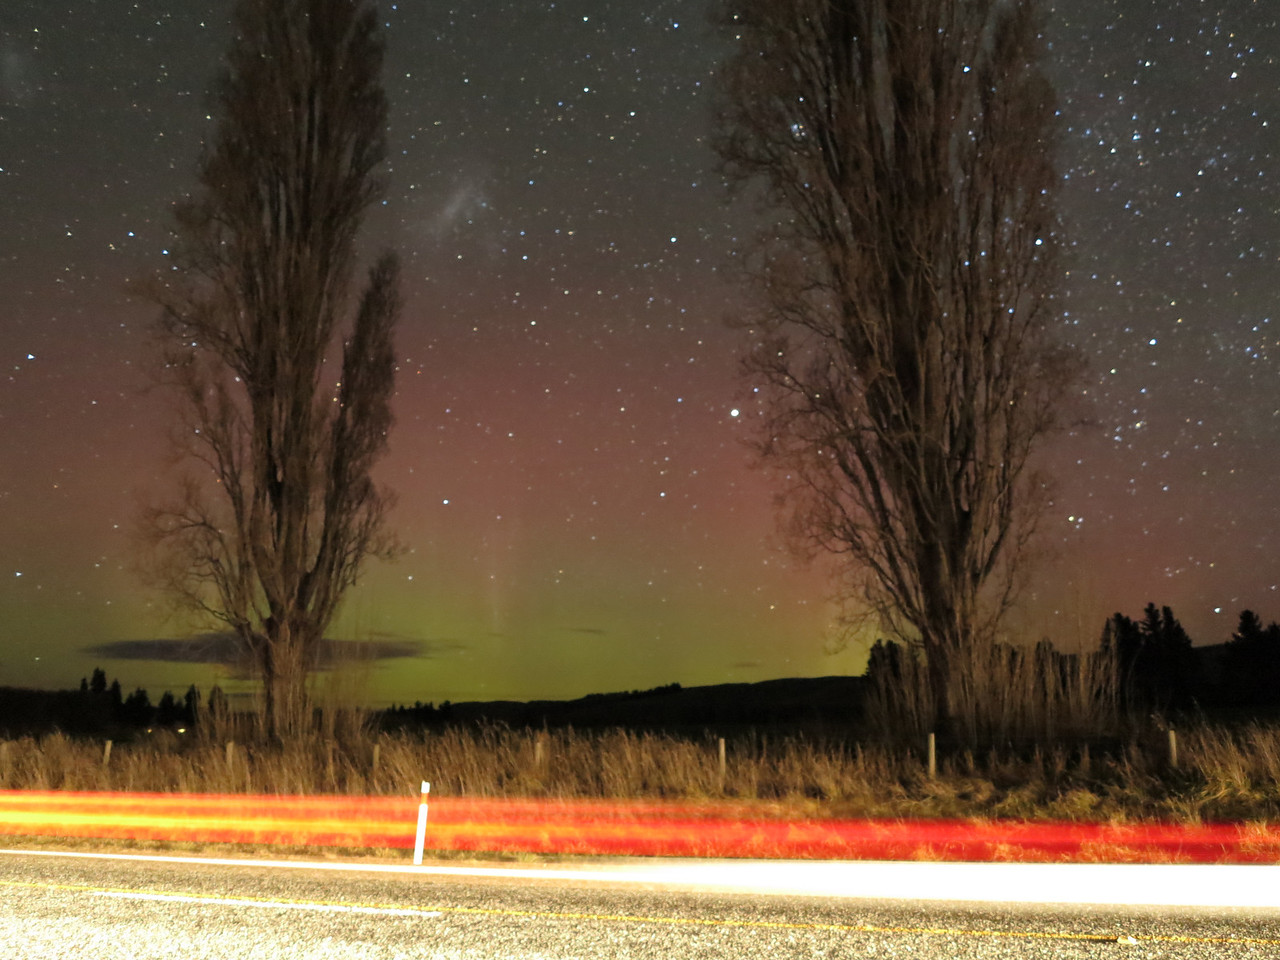 Faded aurora seen with passing car